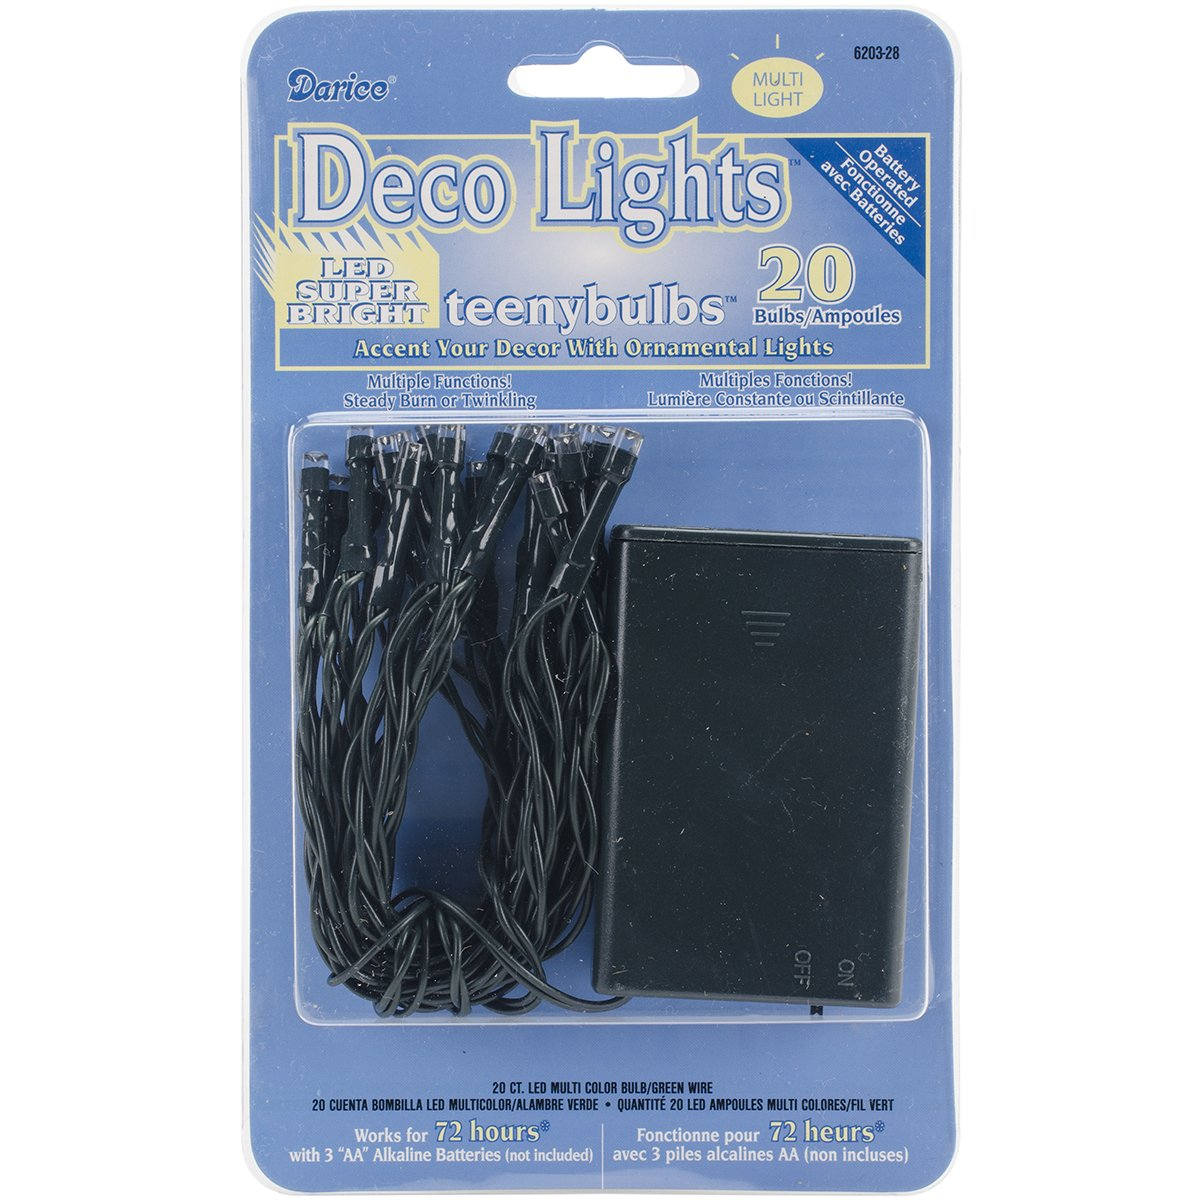 Amazon.com: Darice 620328 Deco Lights Battery Operated Teeny Bulbs with Green Cord (20 Bulbs), Multicolored: Arts, Crafts & Sewing